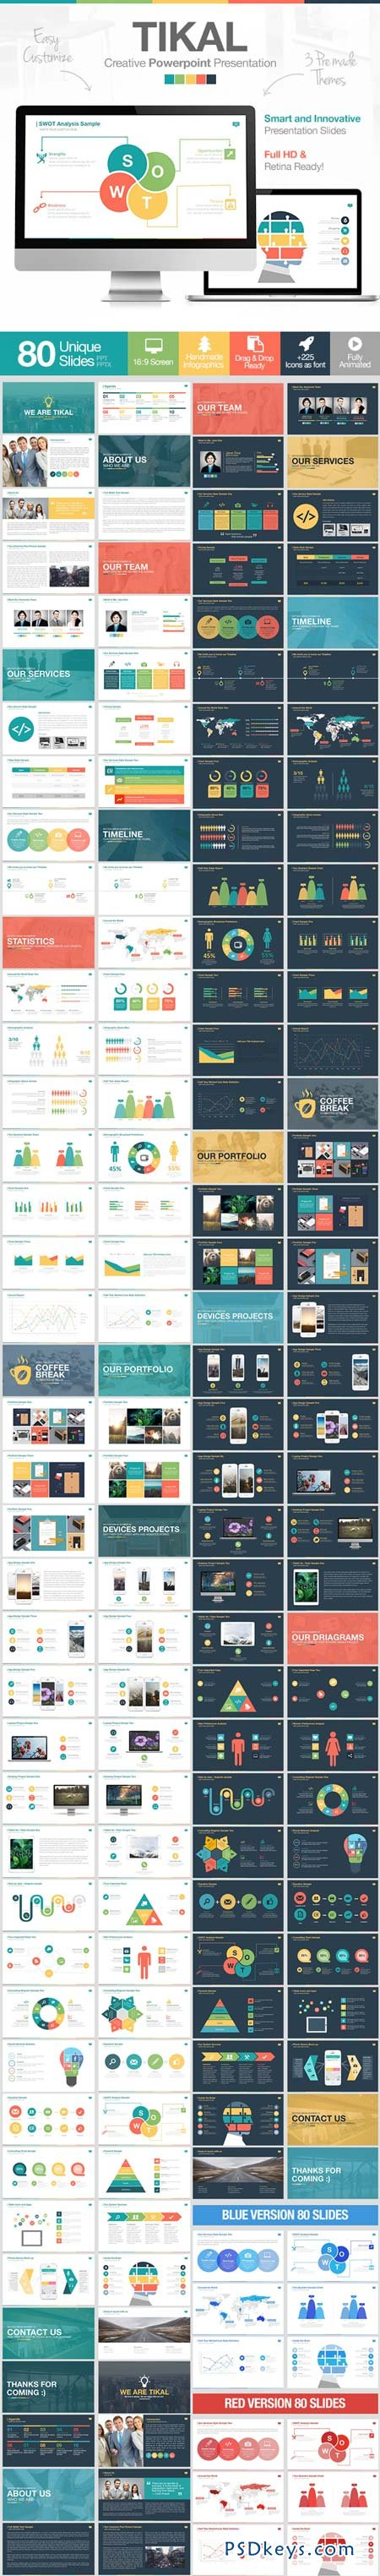 Tikal powerpoint presentation template 9000128 free download tikal powerpoint presentation template 9000128 alramifo Gallery